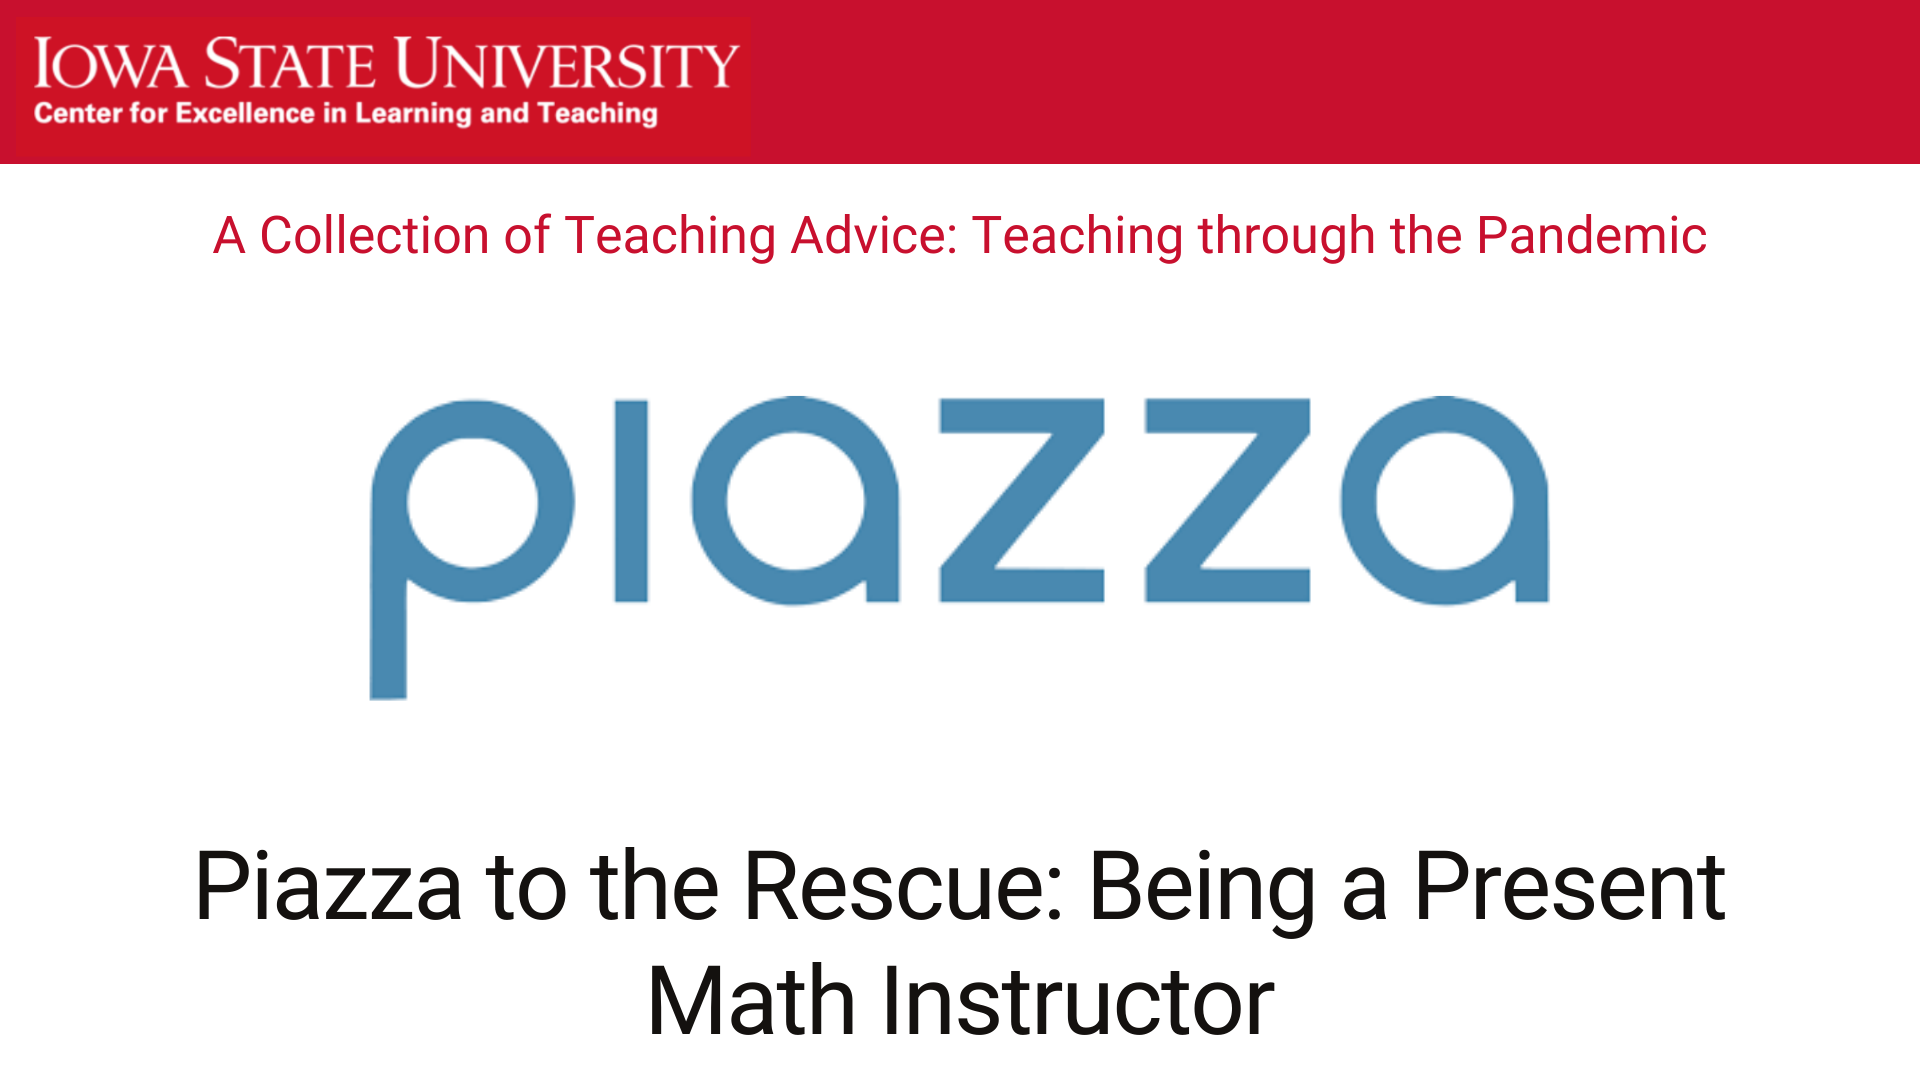 Piazza to the rescue: Being a present Math instructor